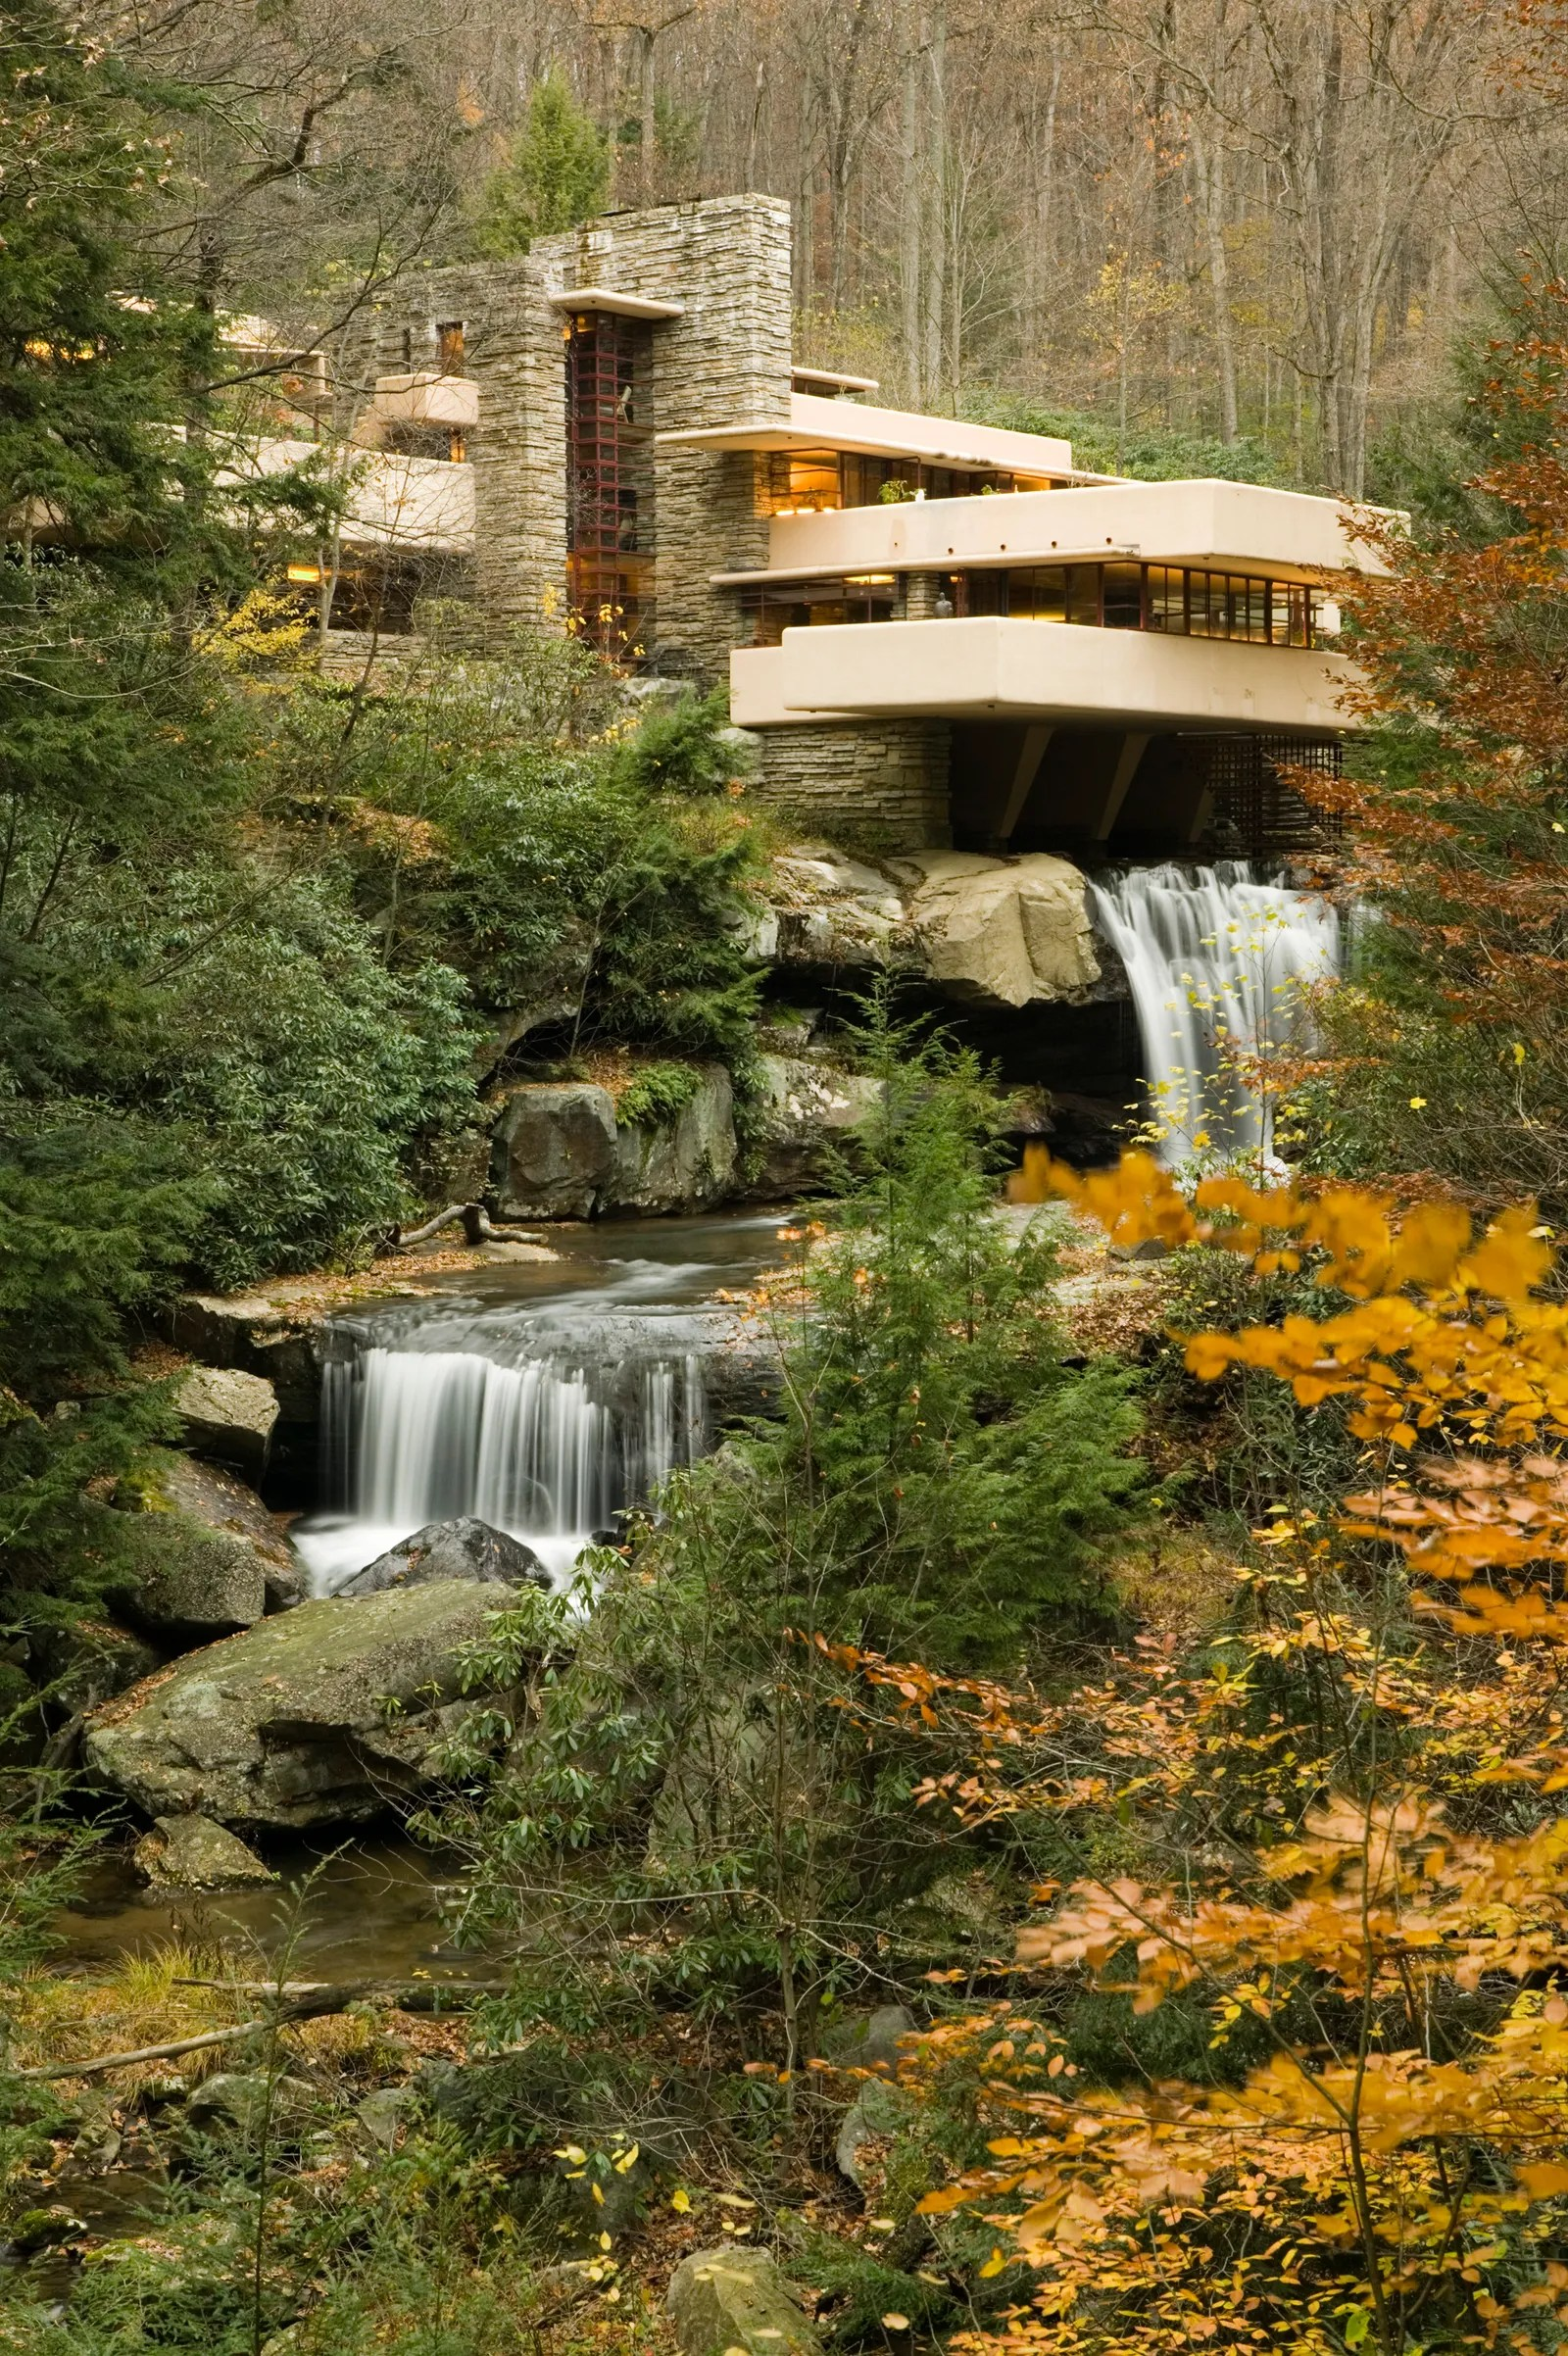 Falling Water House Usa 5 Examples Of Iconic Modern Architecture That Have Serious Flaws